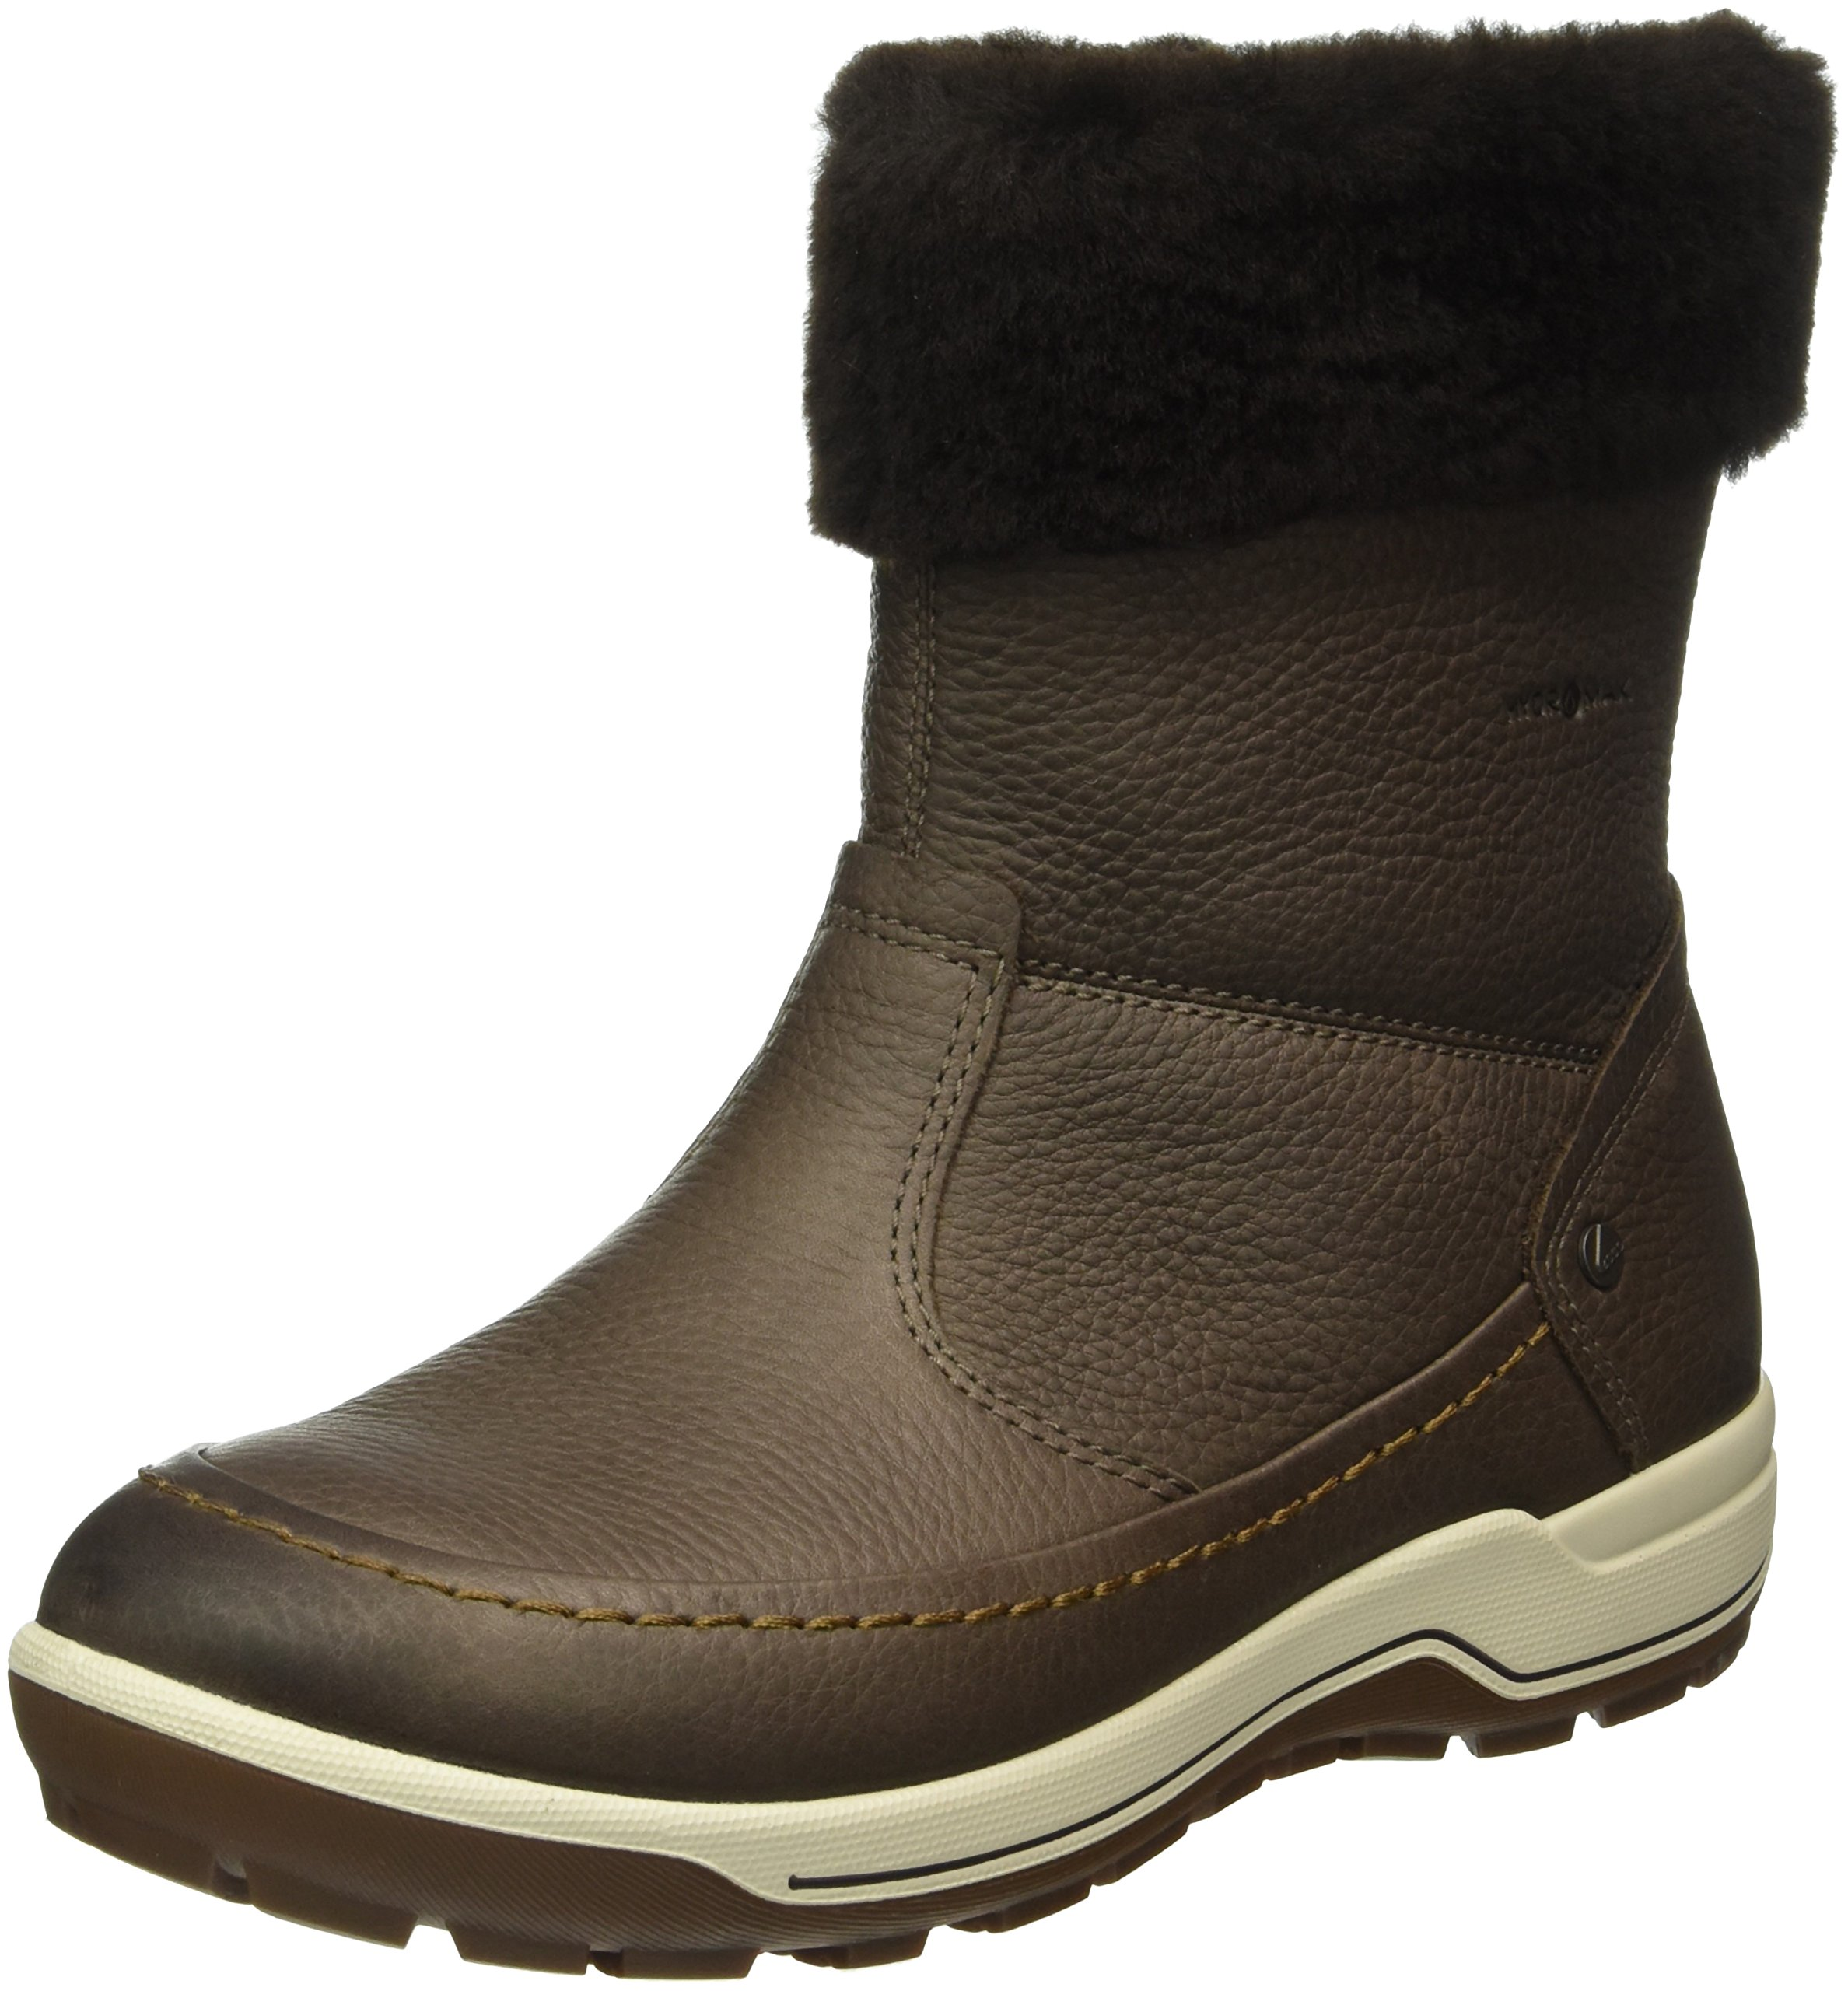 81eF1%2B6hocL - ECCO Women's Trace Boot-w Multisport Outdoor Shoes